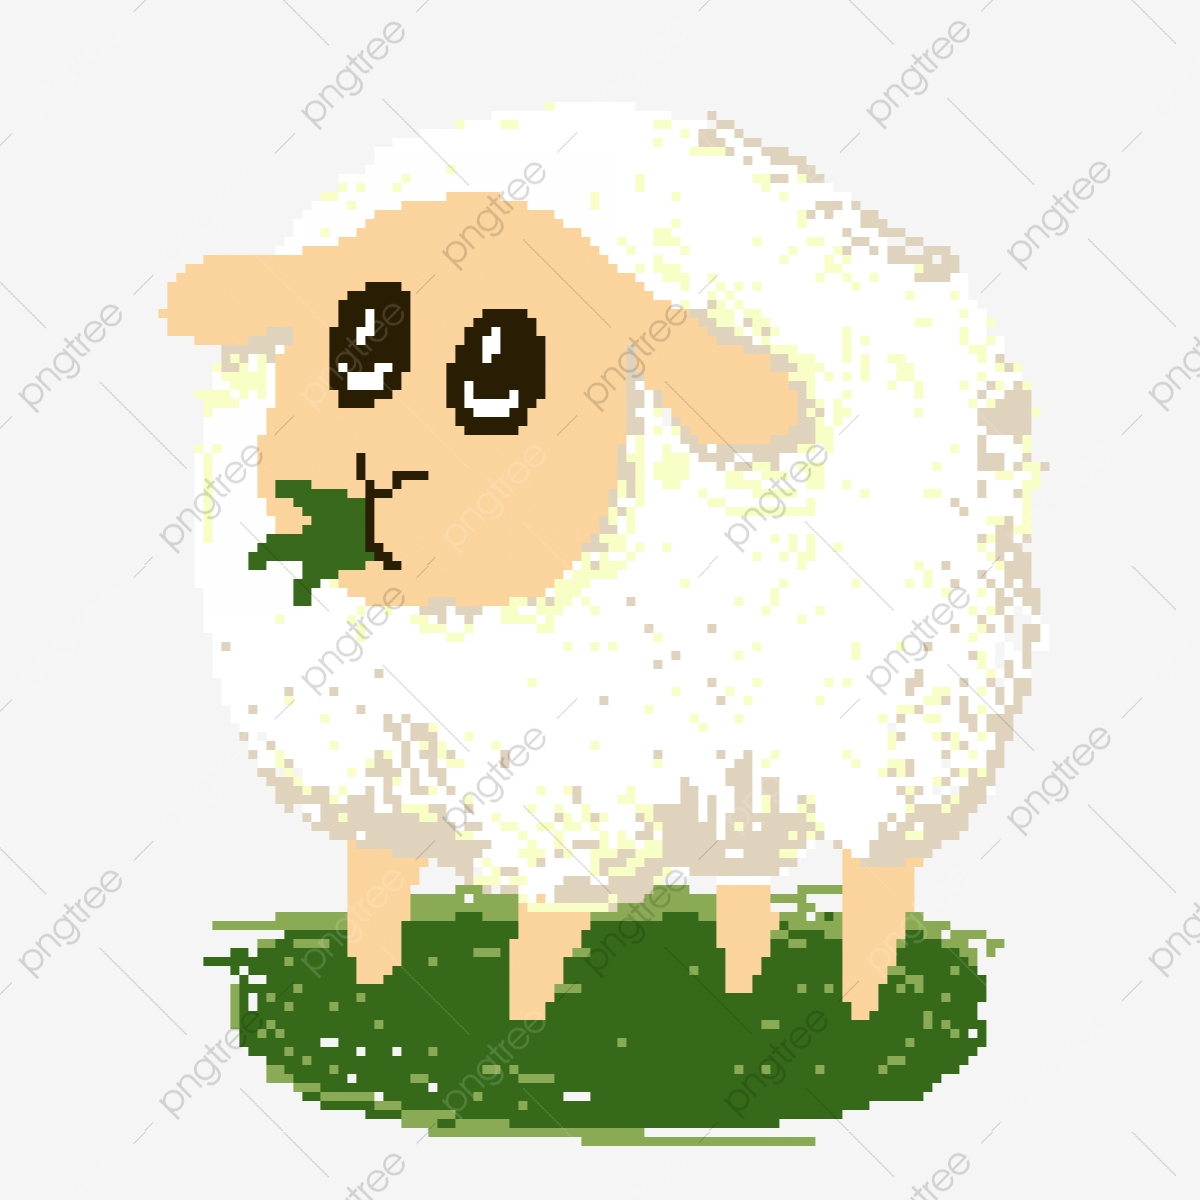 Lamb clipart file. Lovely png transparent image